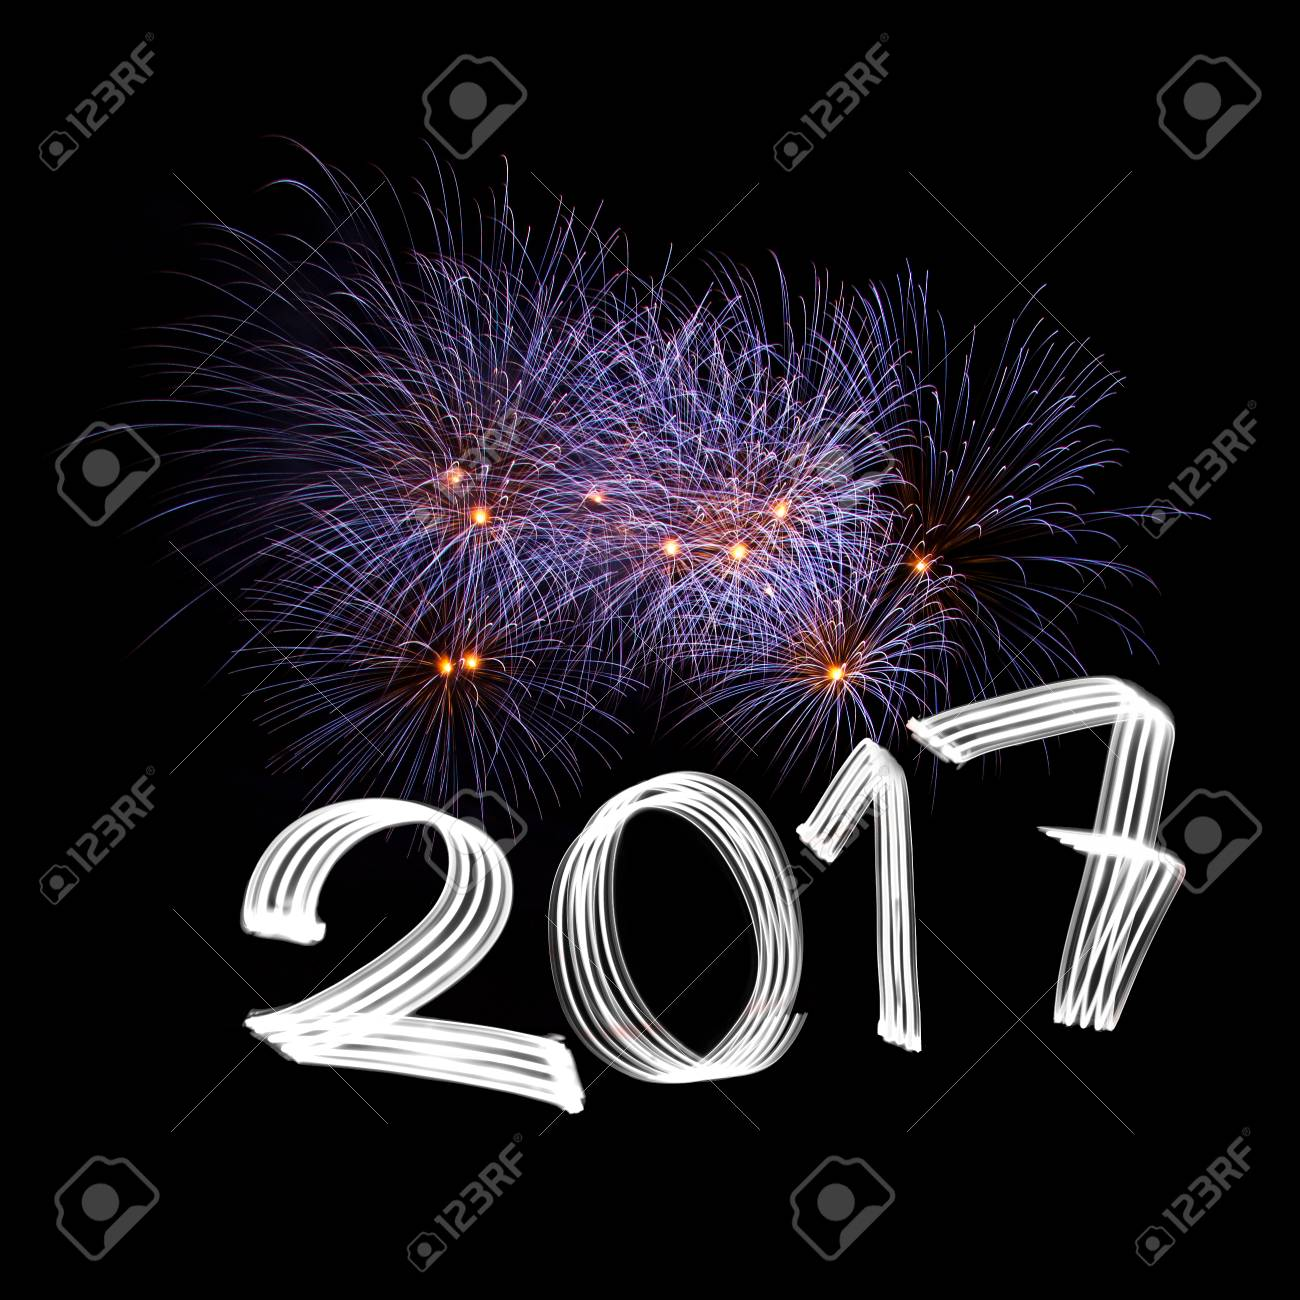 keywords 2017 new year new years eve fireworks year light